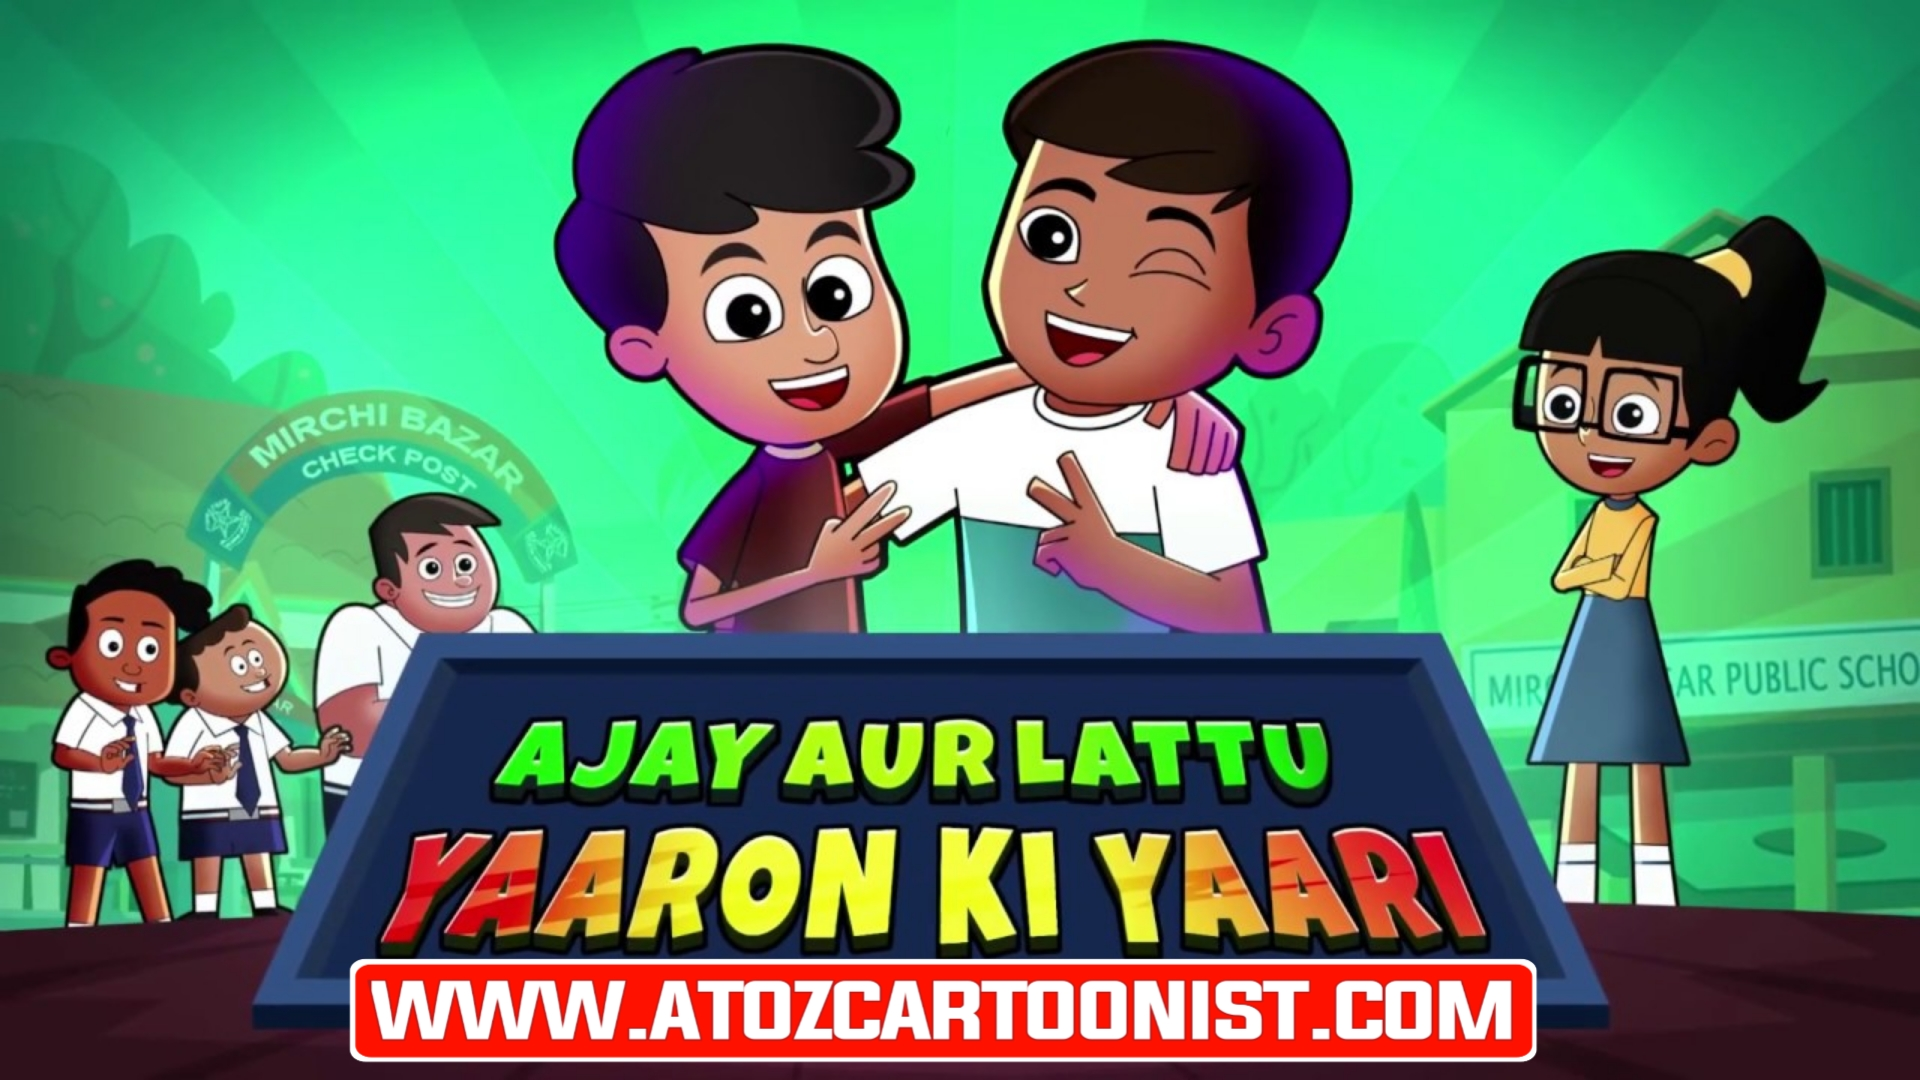 LITTLE SINGHAM : AJAY AUR LATTU KI YAARON KI YAARI FULL MOVIE IN HINDI DOWNLOAD (480P HALF HD)